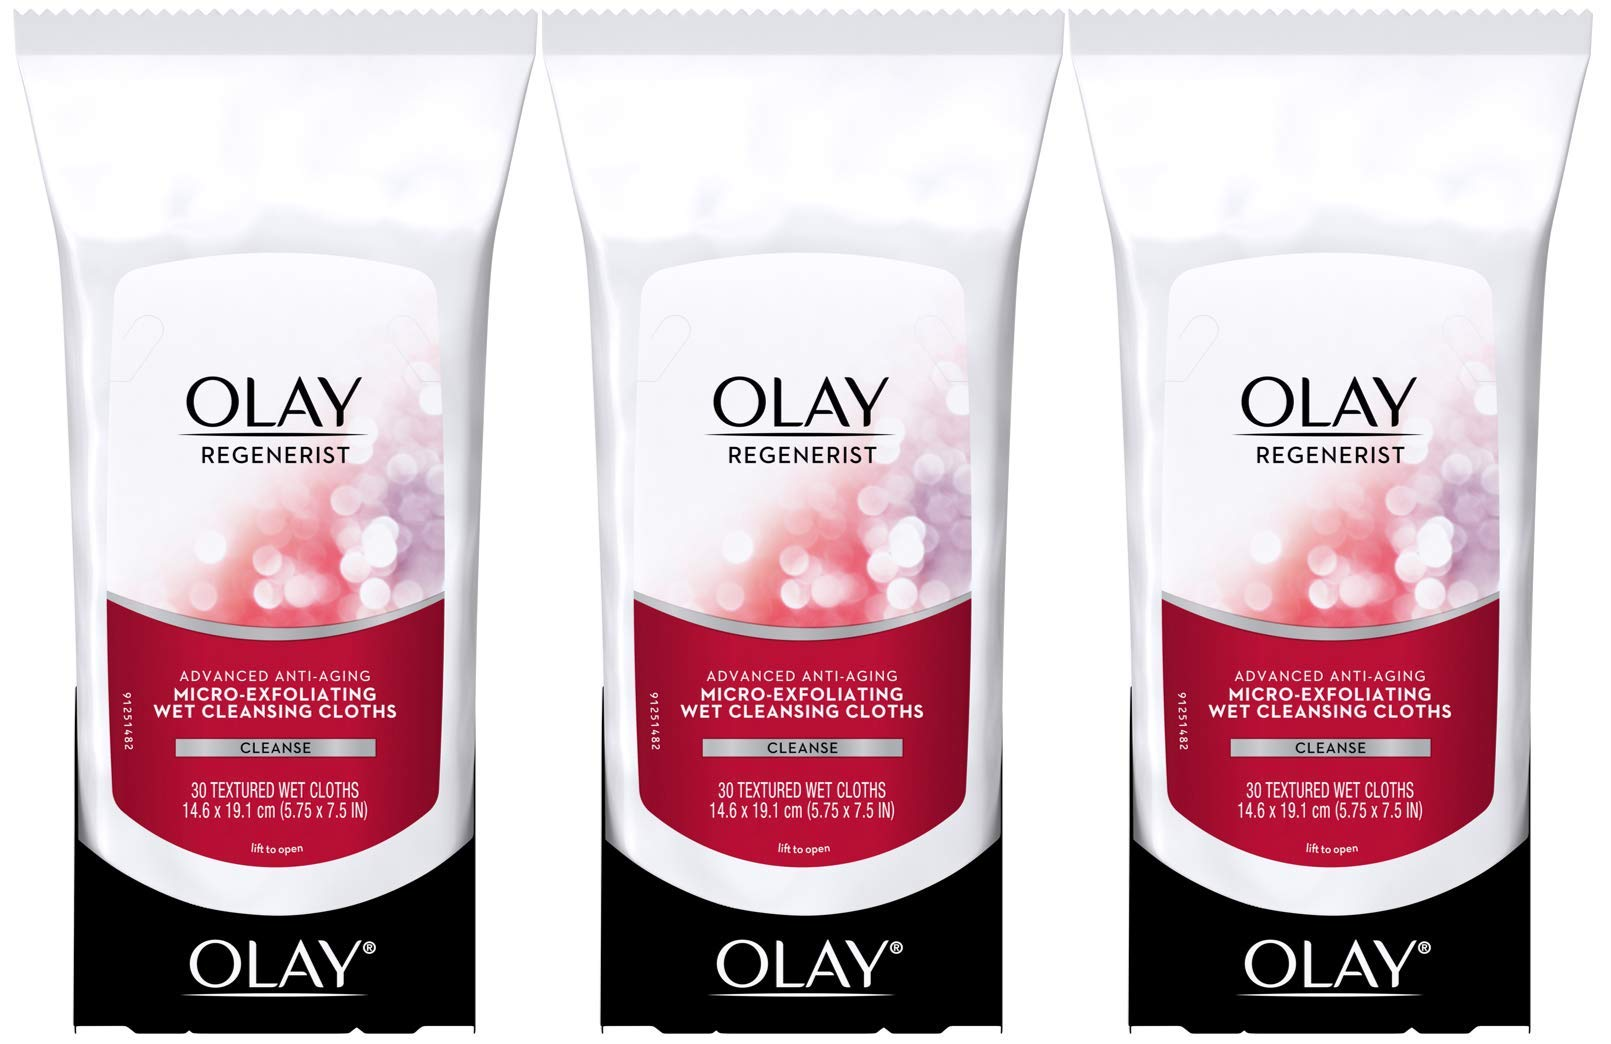 Makeup Remover Facial Wipes by Olay Regenerist with Vitamin E & C, Micro-Exfoliating Wet Cleansing Cloths, 30 Count (Pack of 3) by Olay